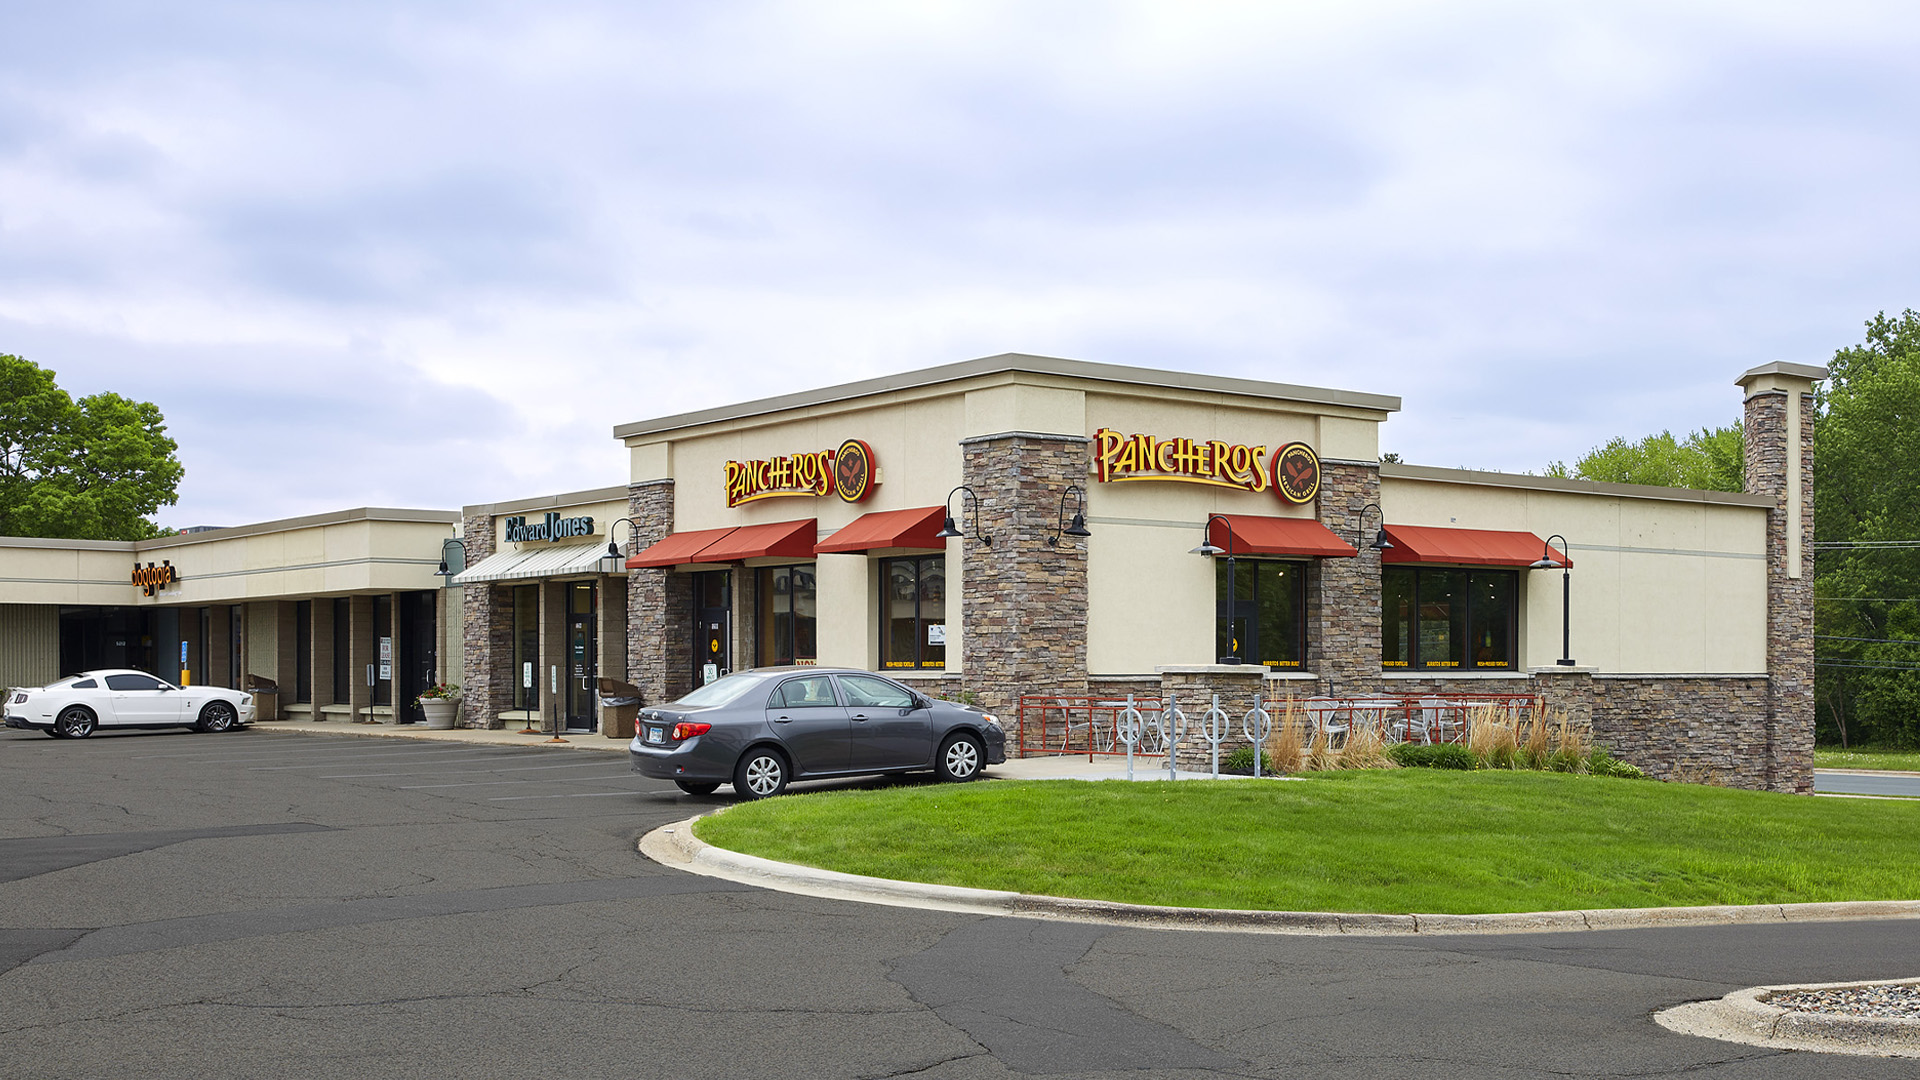 Normandale Retail Shopping Center Bloomington MN exterior view featuring Pancheros